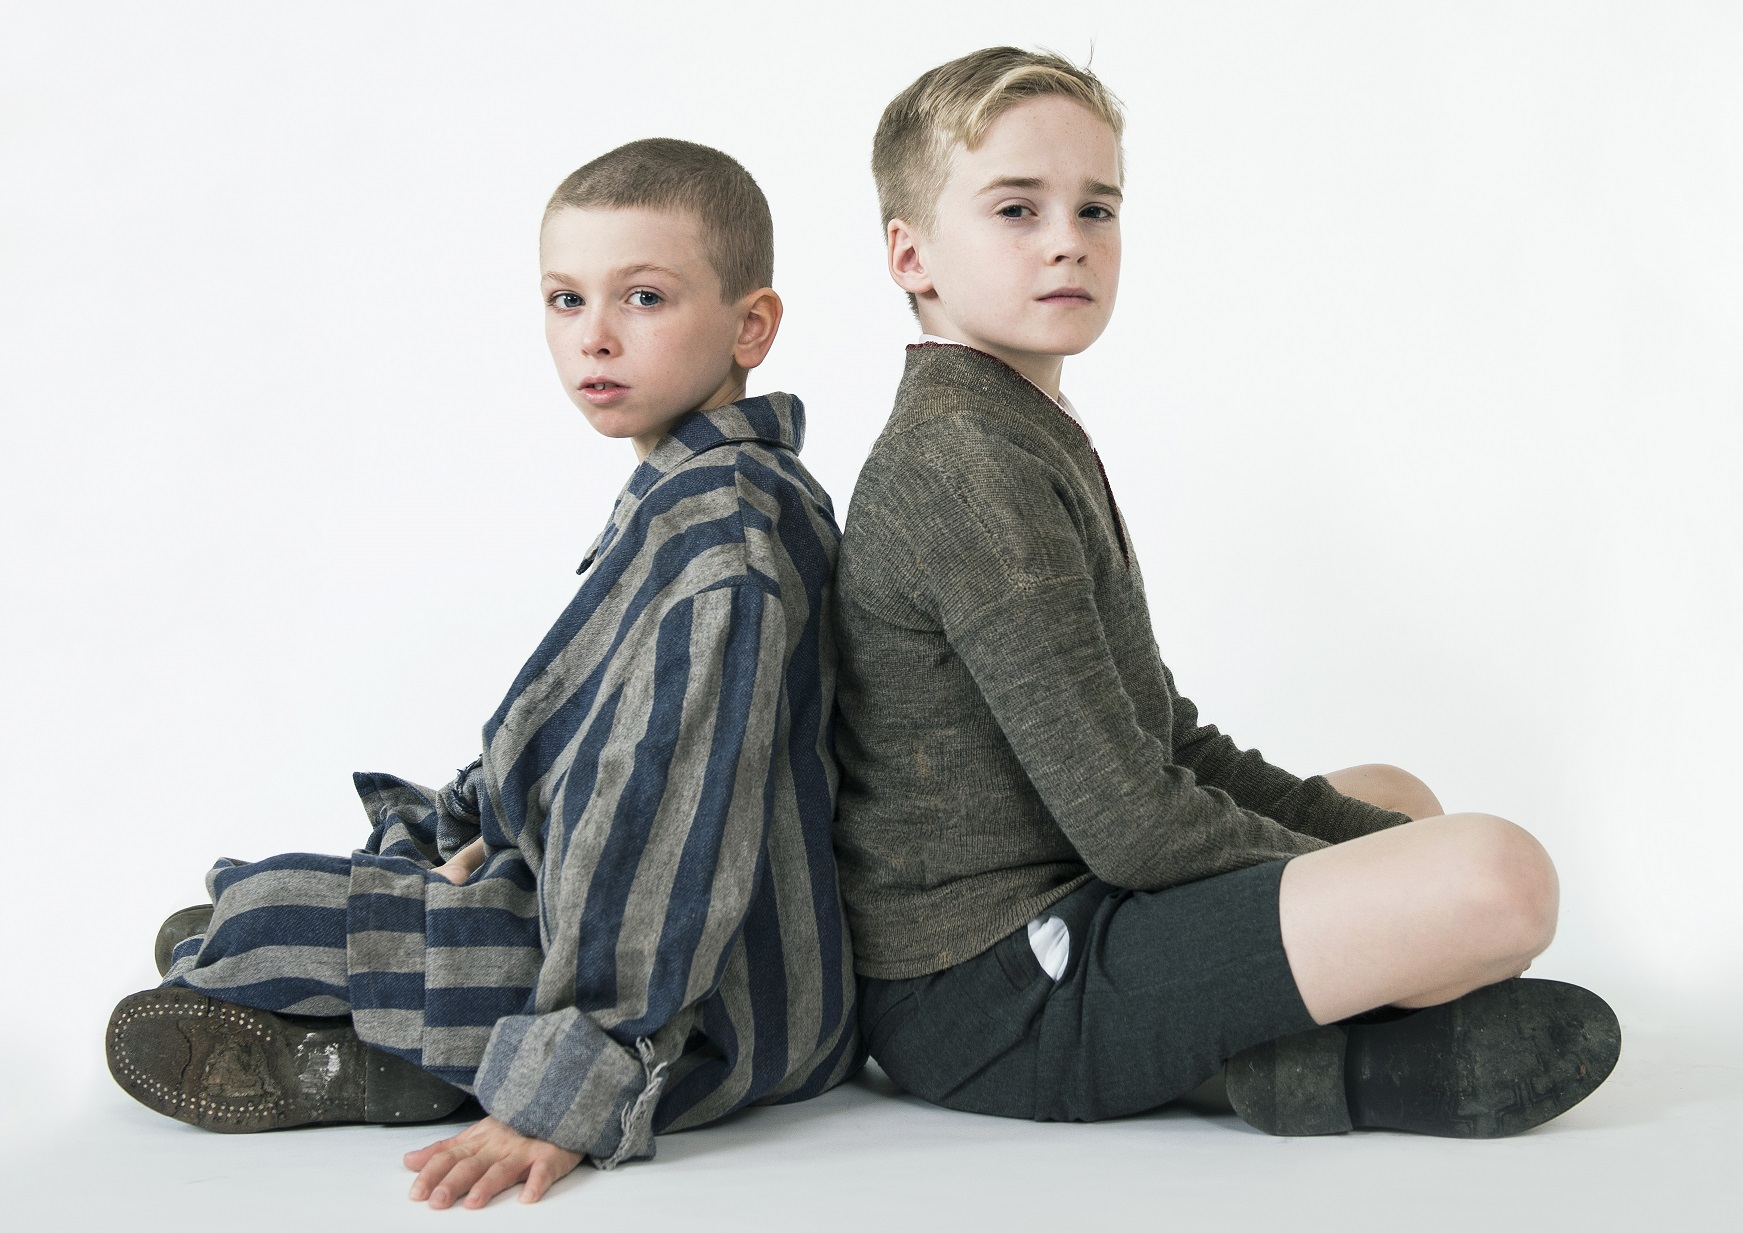 john boyne angus jackson the boy in the striped pyjamas colby mulgrew and finlay wright stephens in the boy in the striped pyjamas photo